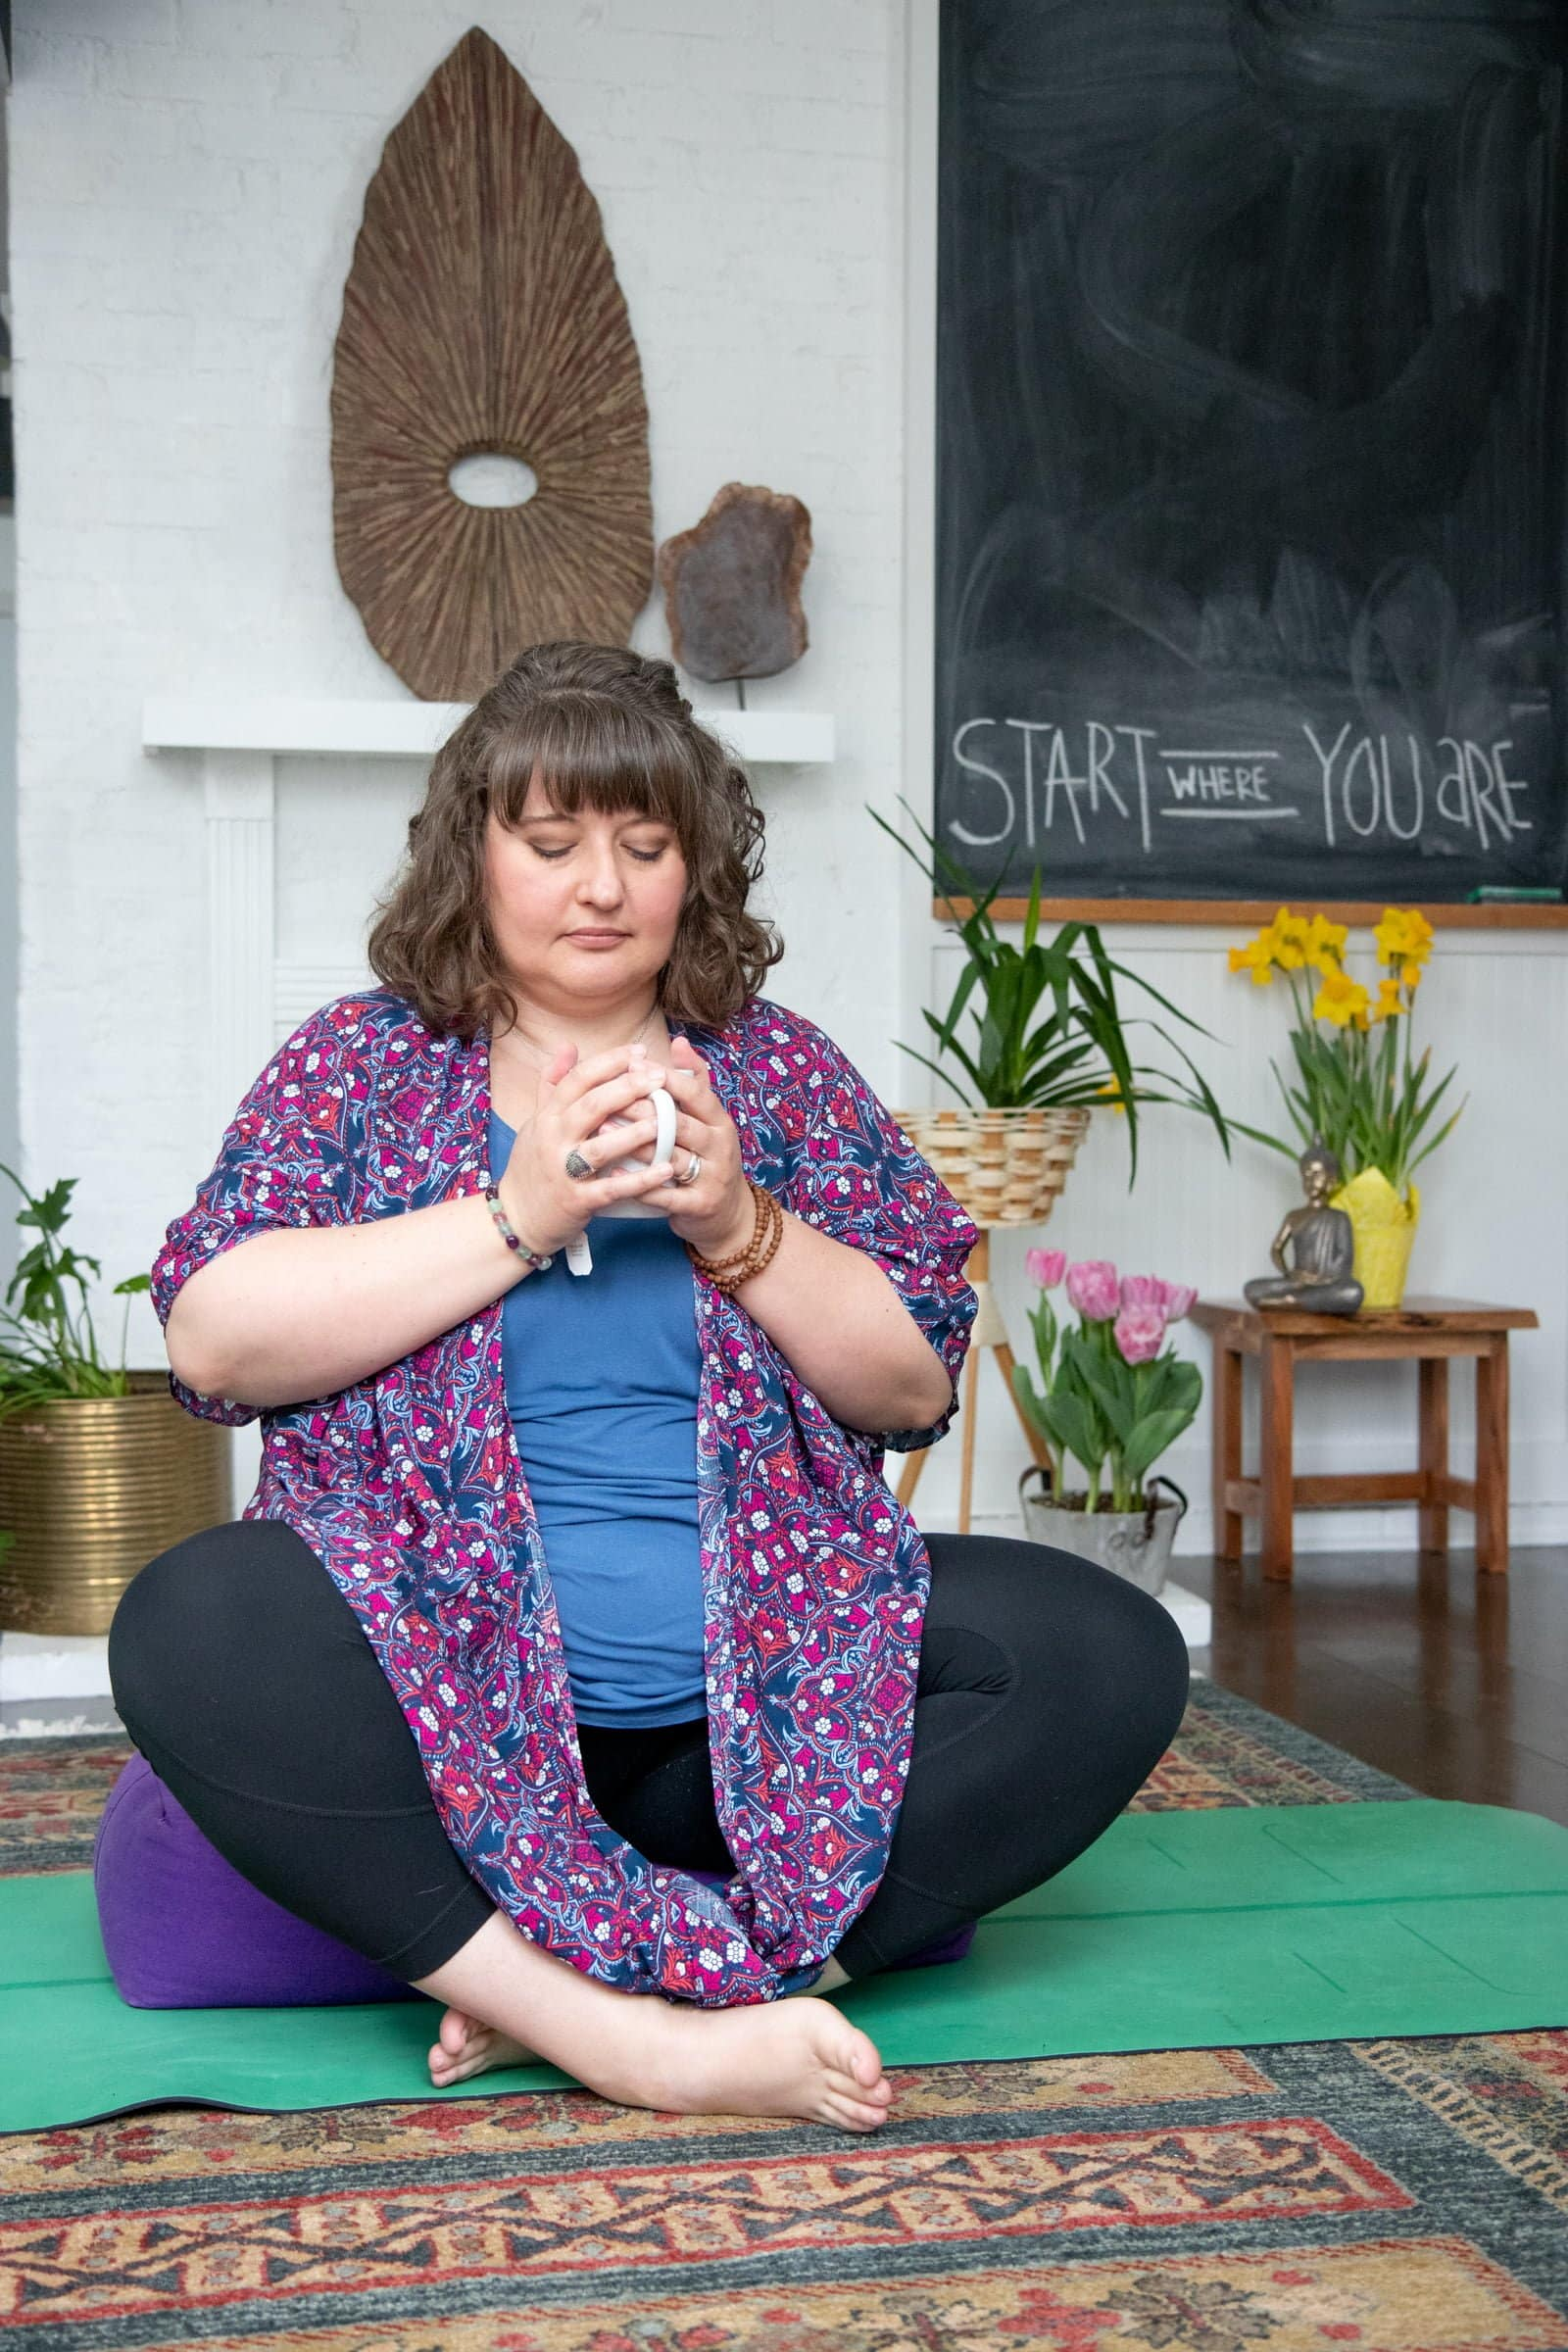 Brunette woman sitting cross-legged on a yoga mat with her eyes closed. She holds a mug of tea as she starts meditating.